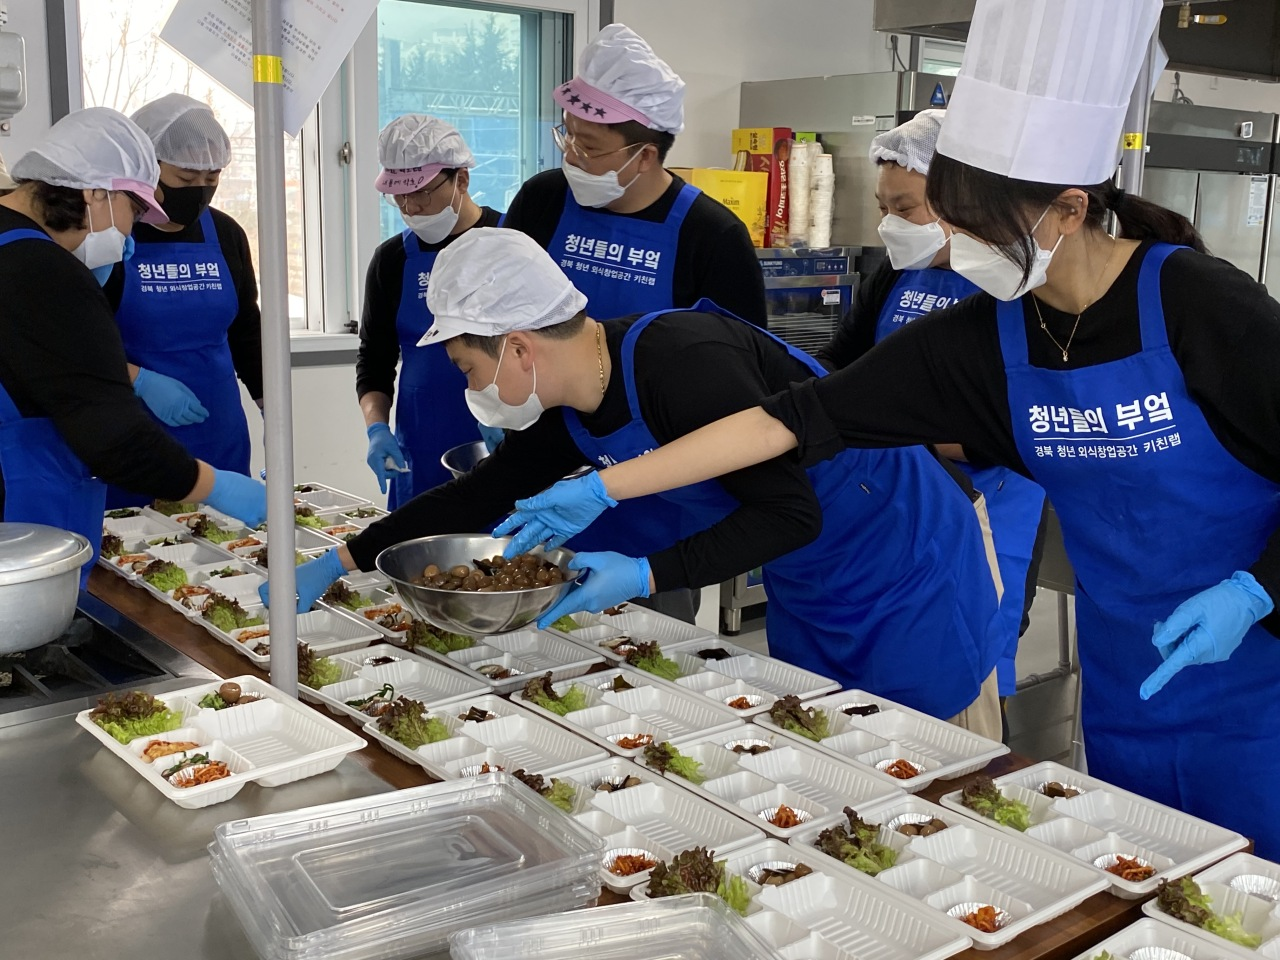 Volunteers prepare packaged meals for those working on the front lines of the coronavirus fight, including hospitals and testing sites, in Gyeongsan, North Gyeongsang Province, March 8. (Yonhap)